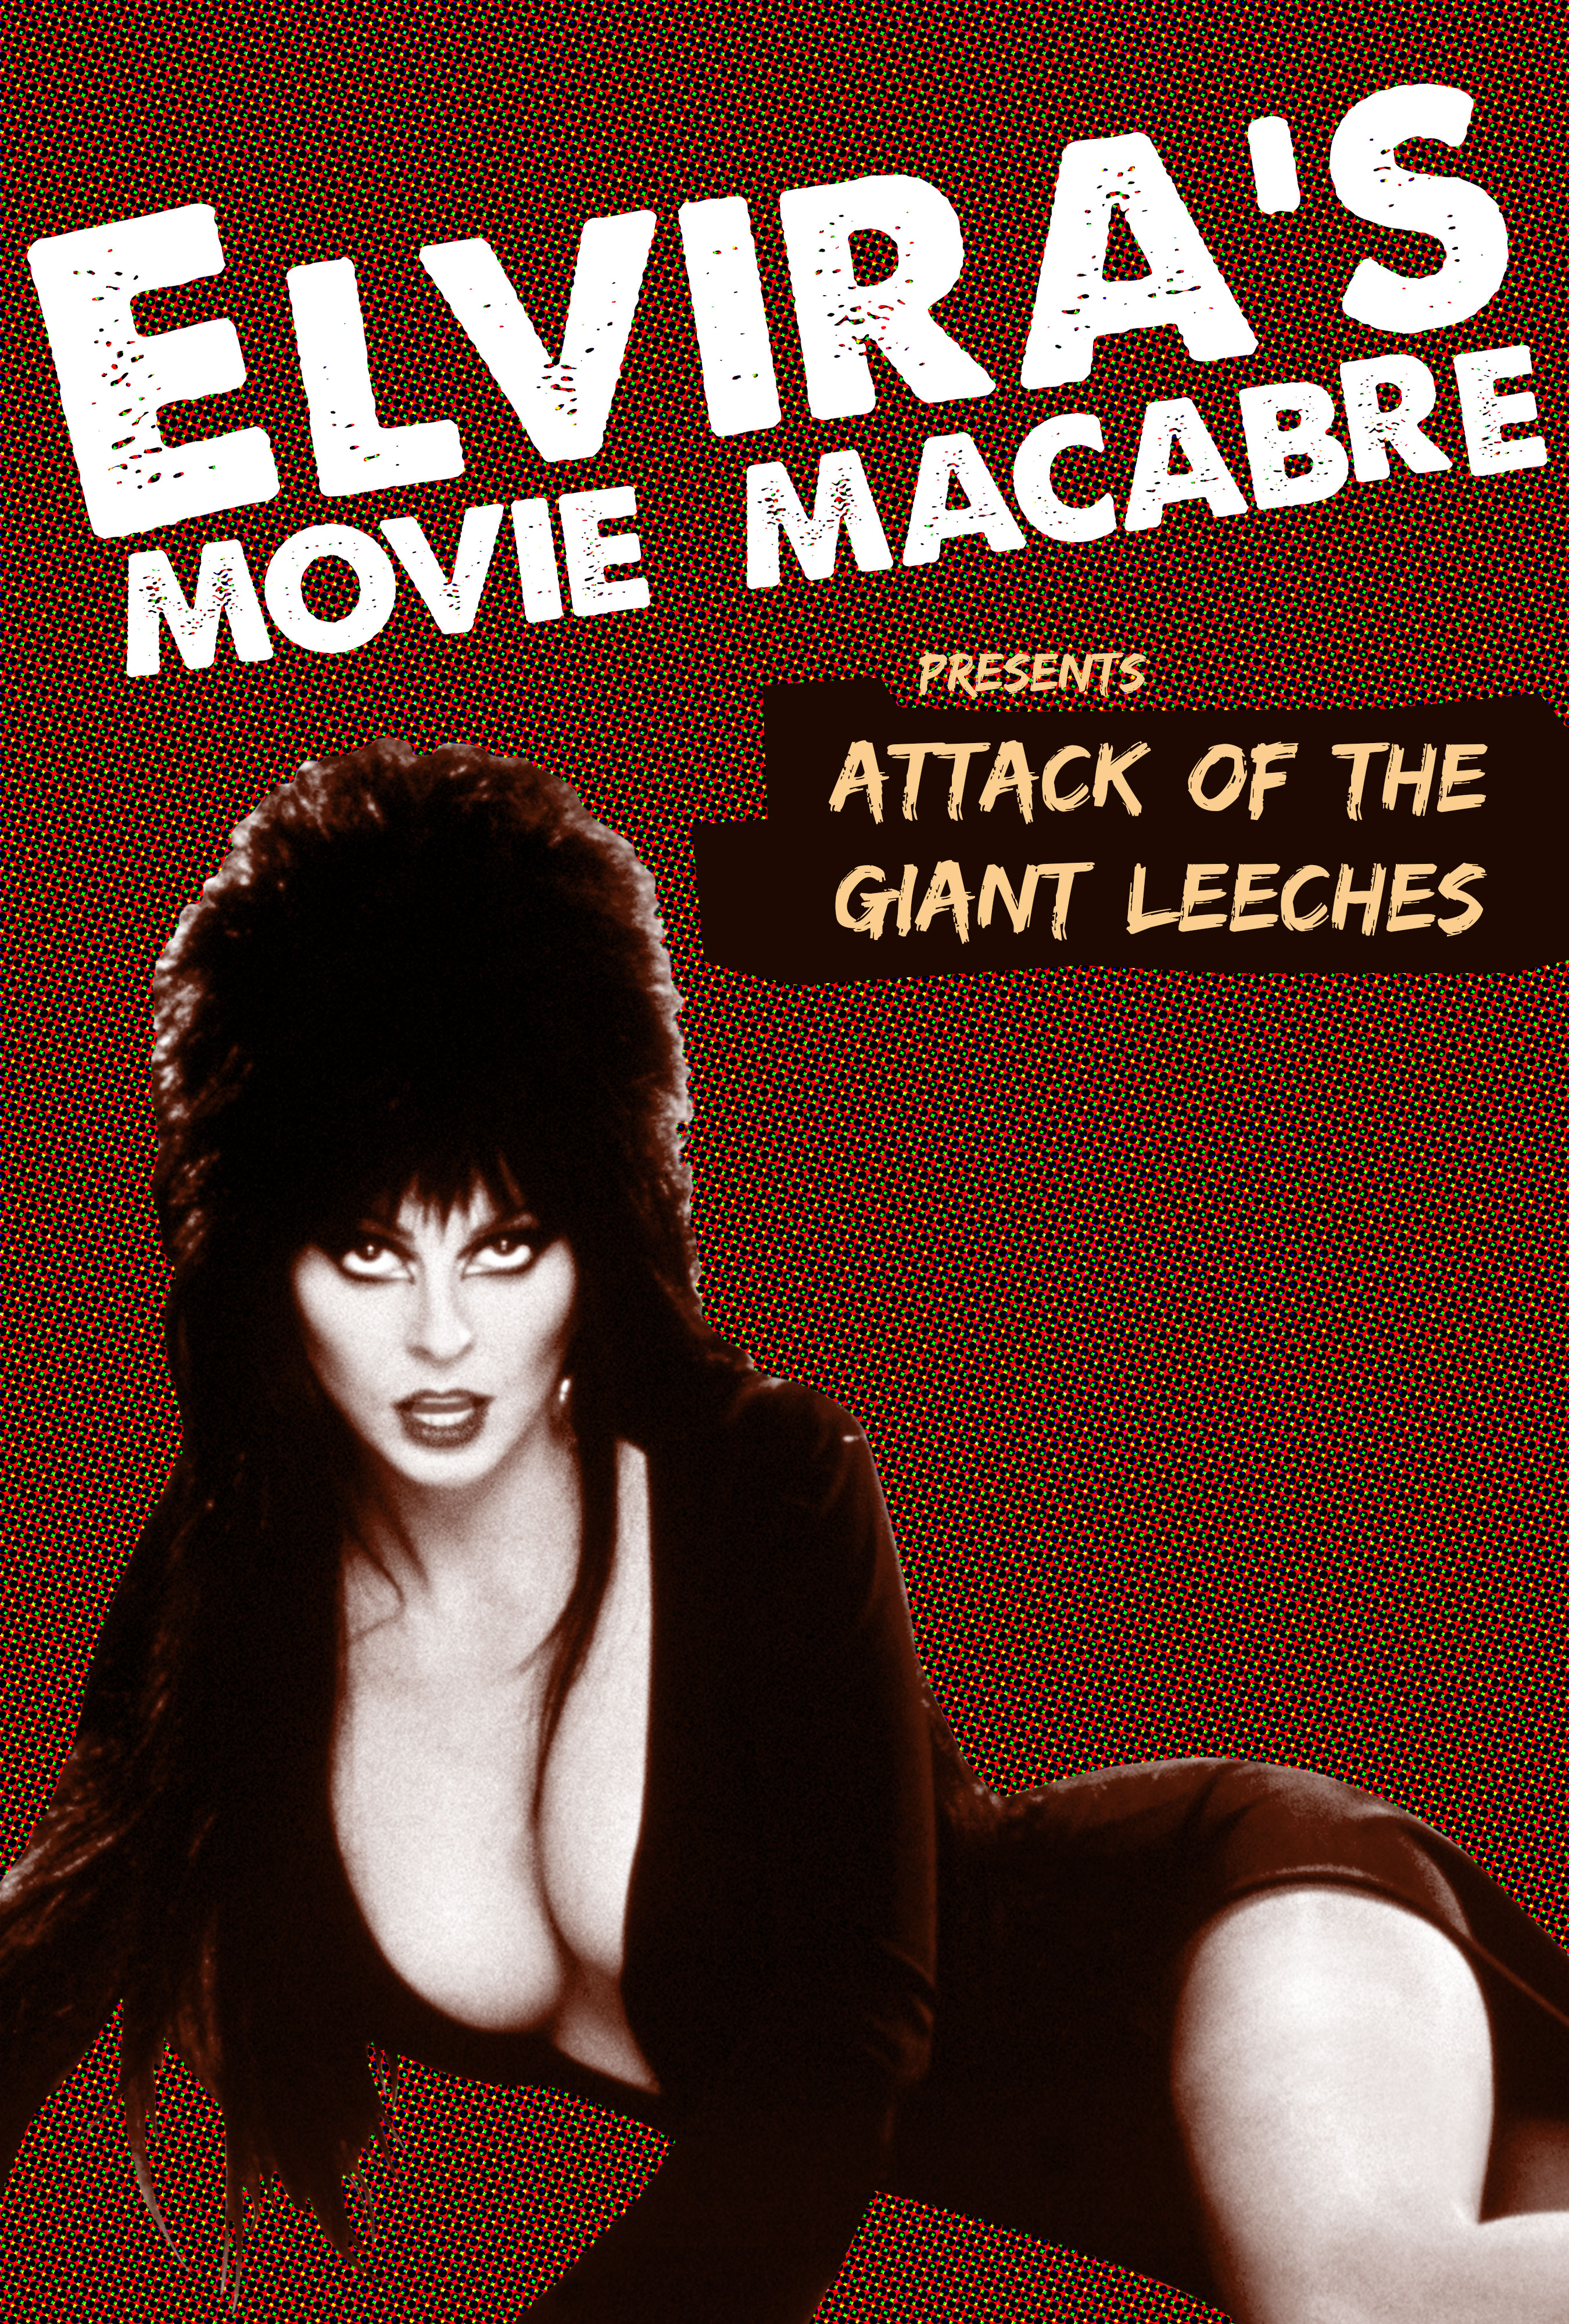 Elvira's Movie Macabre: Attack Of The Giant Leeches